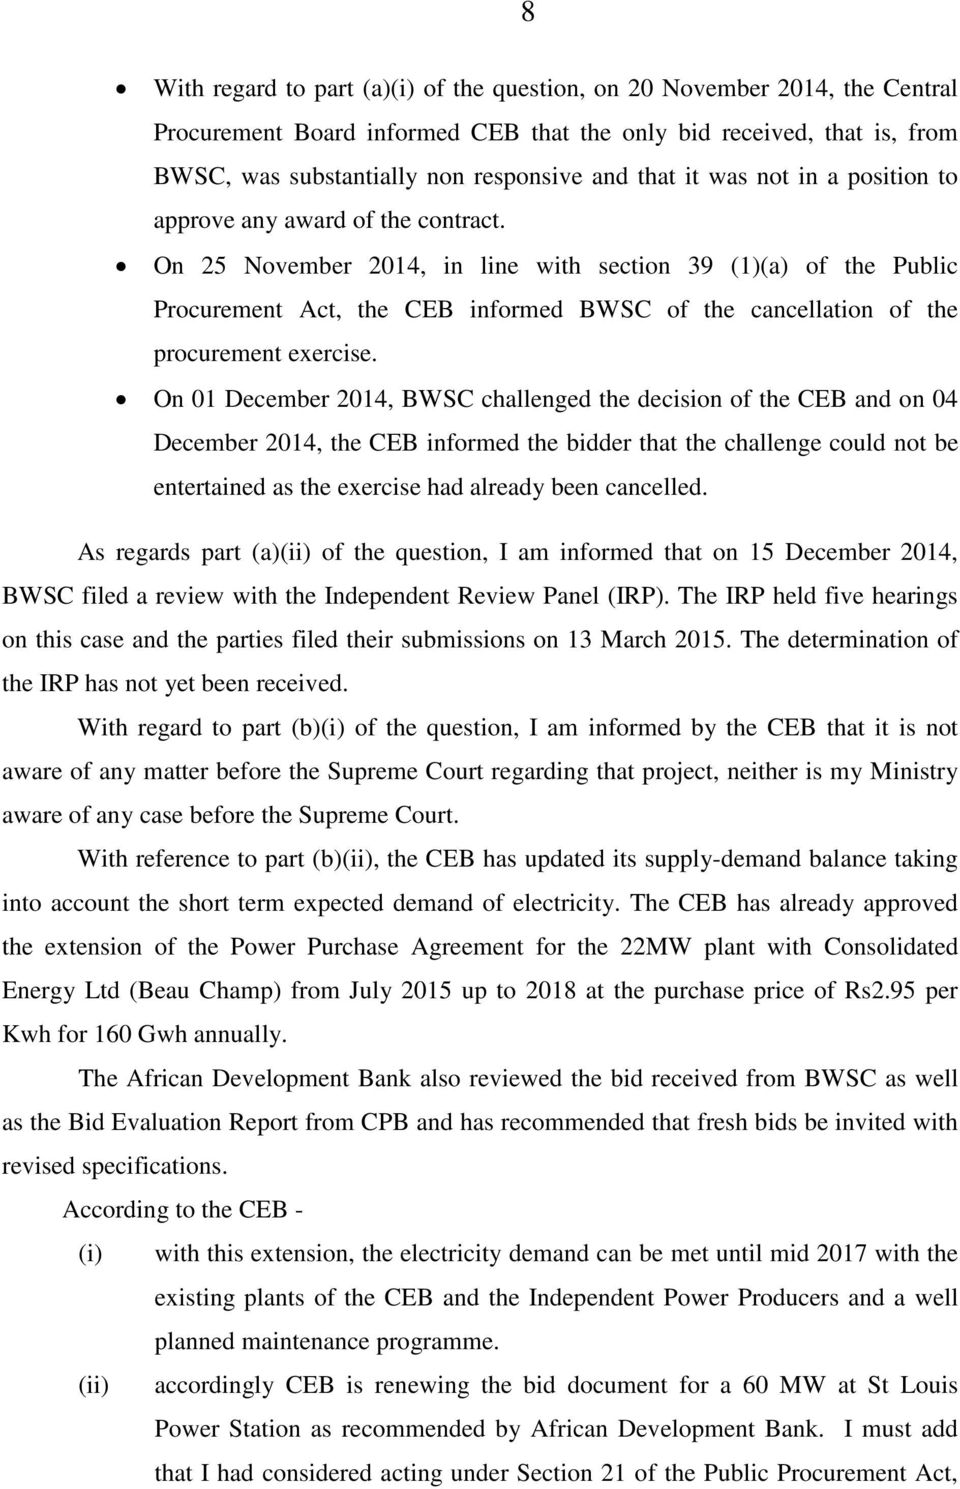 On 25 November 2014, in line with section 39 (1)(a) of the Public Procurement Act, the CEB informed BWSC of the cancellation of the procurement exercise.